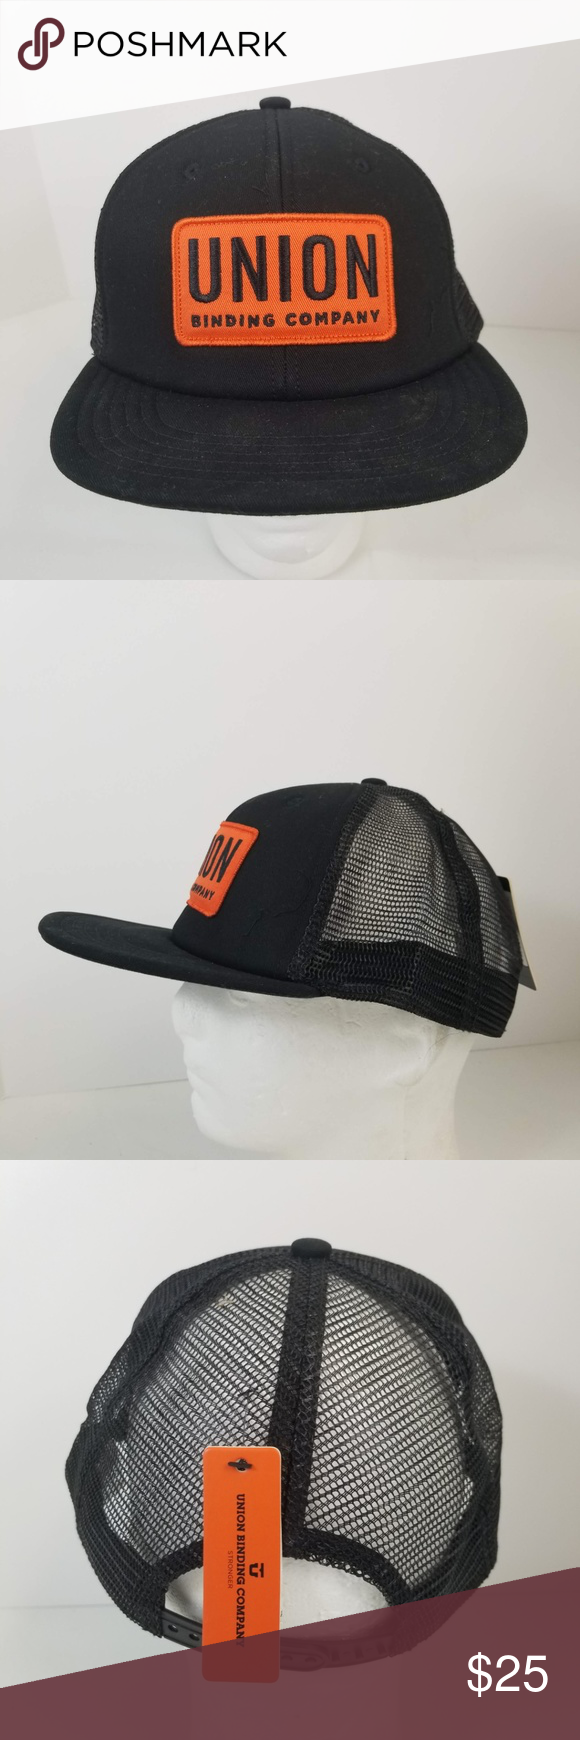 buy popular ebb20 772b8 Union Binding Company Trucker Hat Black Snapback Union Binding Company Union  Trucker Hat Black with orange logo patch One size, adjustable snapback This  hat ...